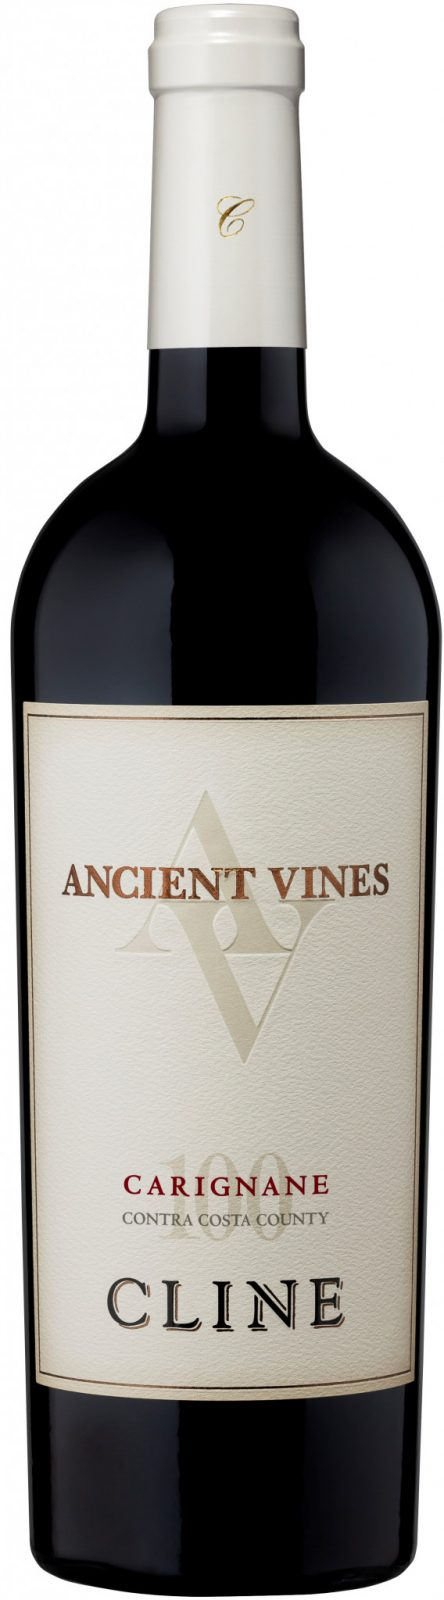 Cline Ancient Vines Carignane - wineaffair